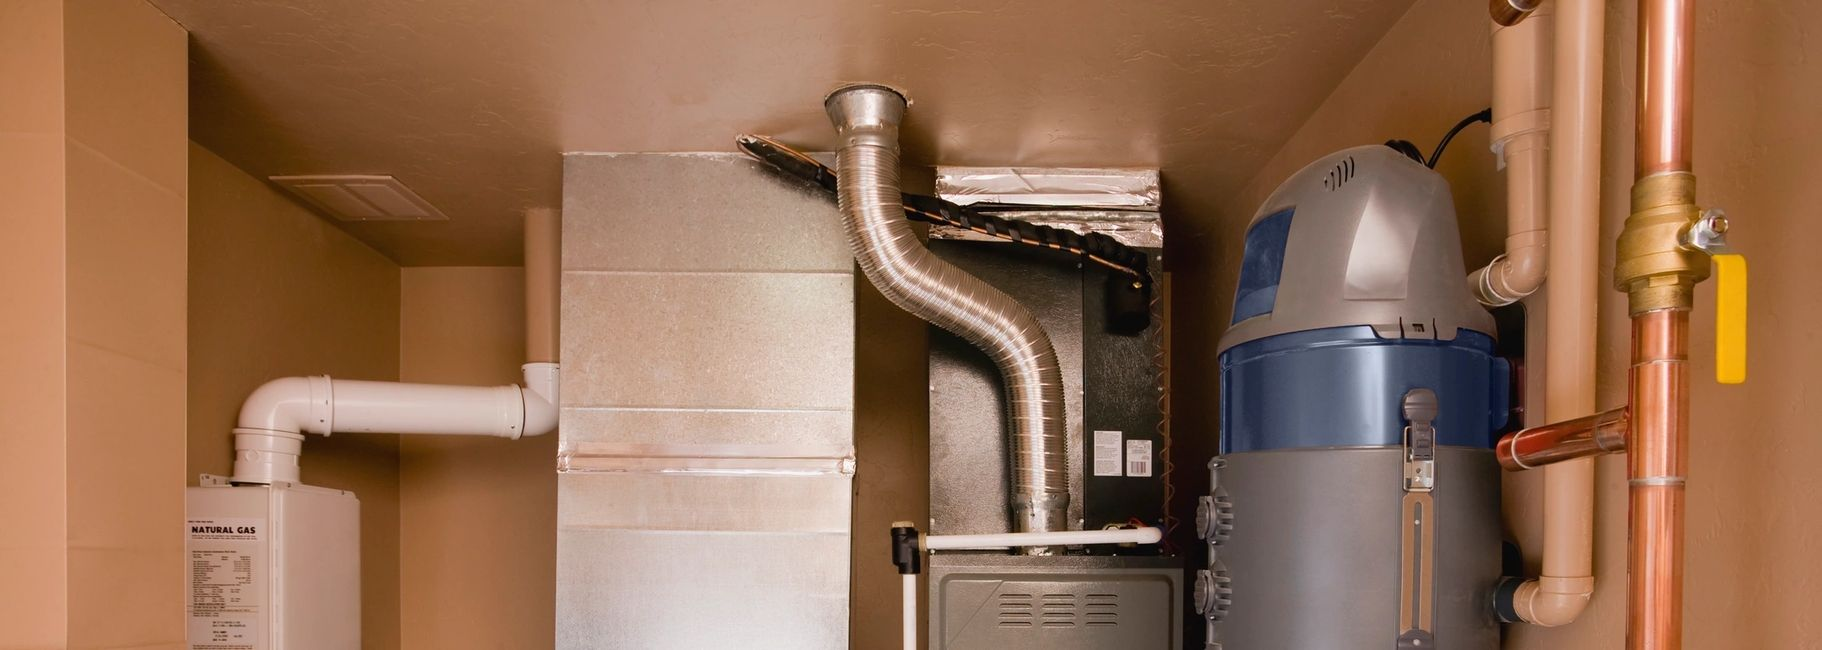 New furnace and tankless water heater installation